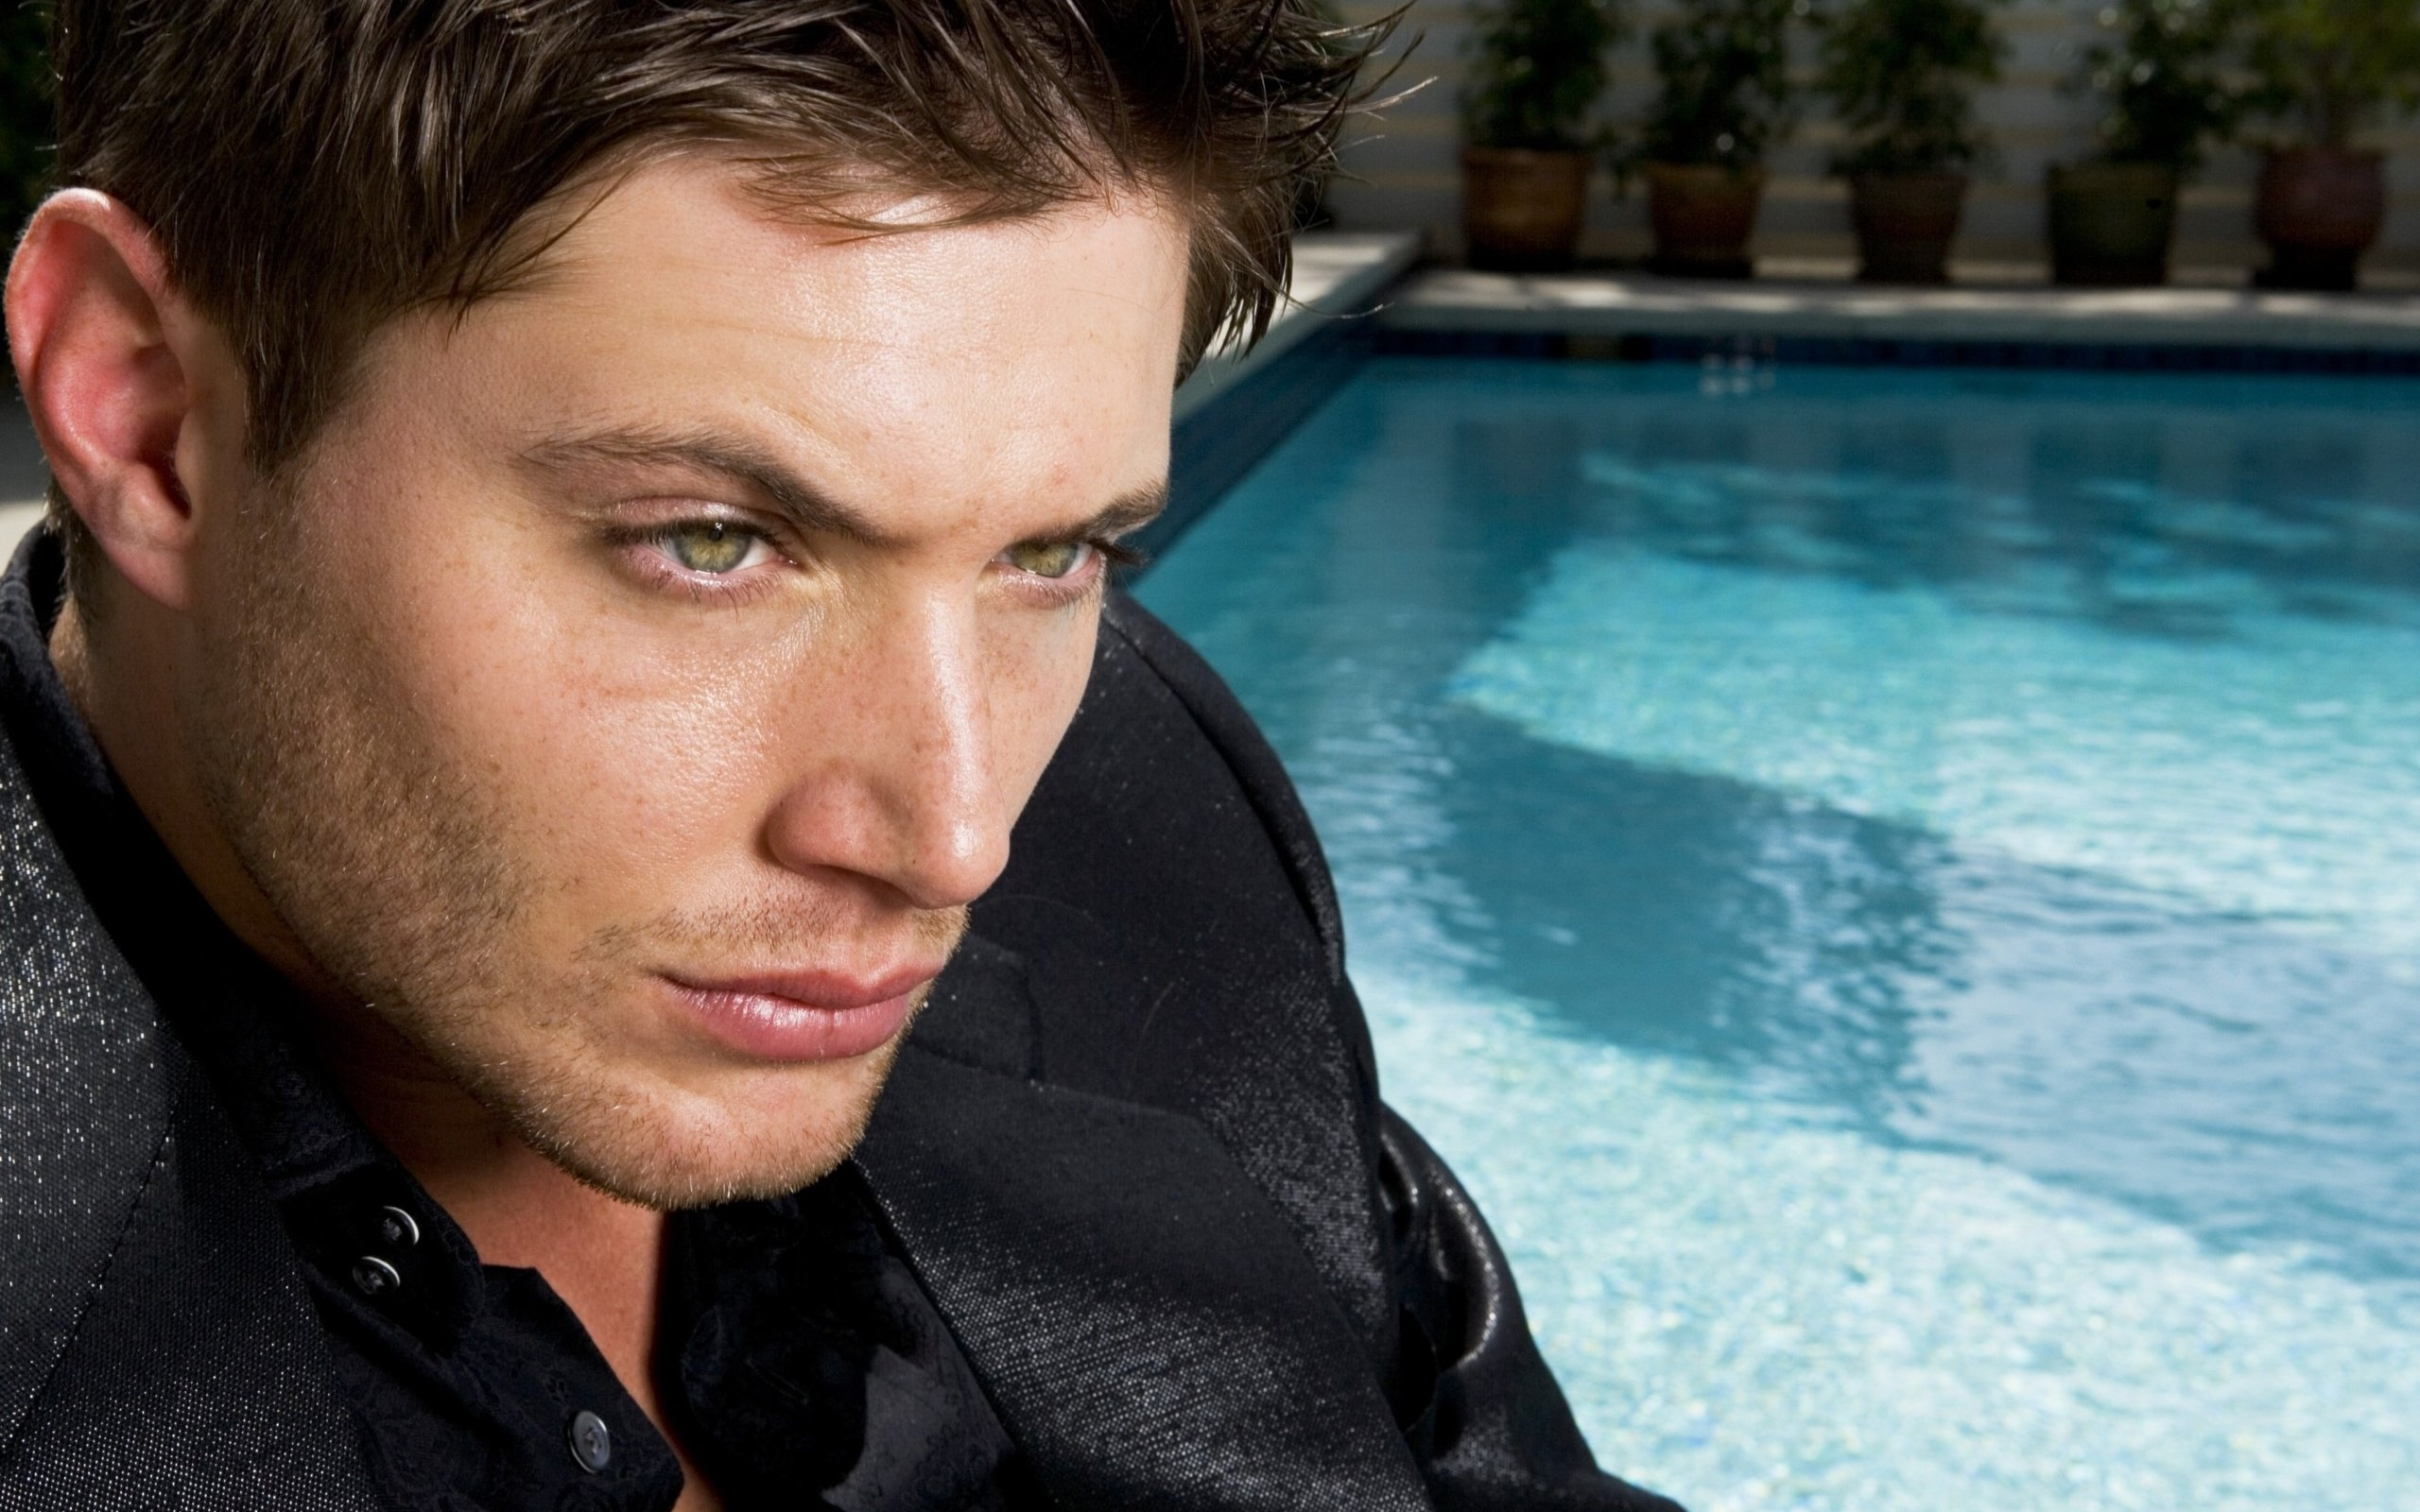 download Handsome man about pool wallpapers and images 2560x1600